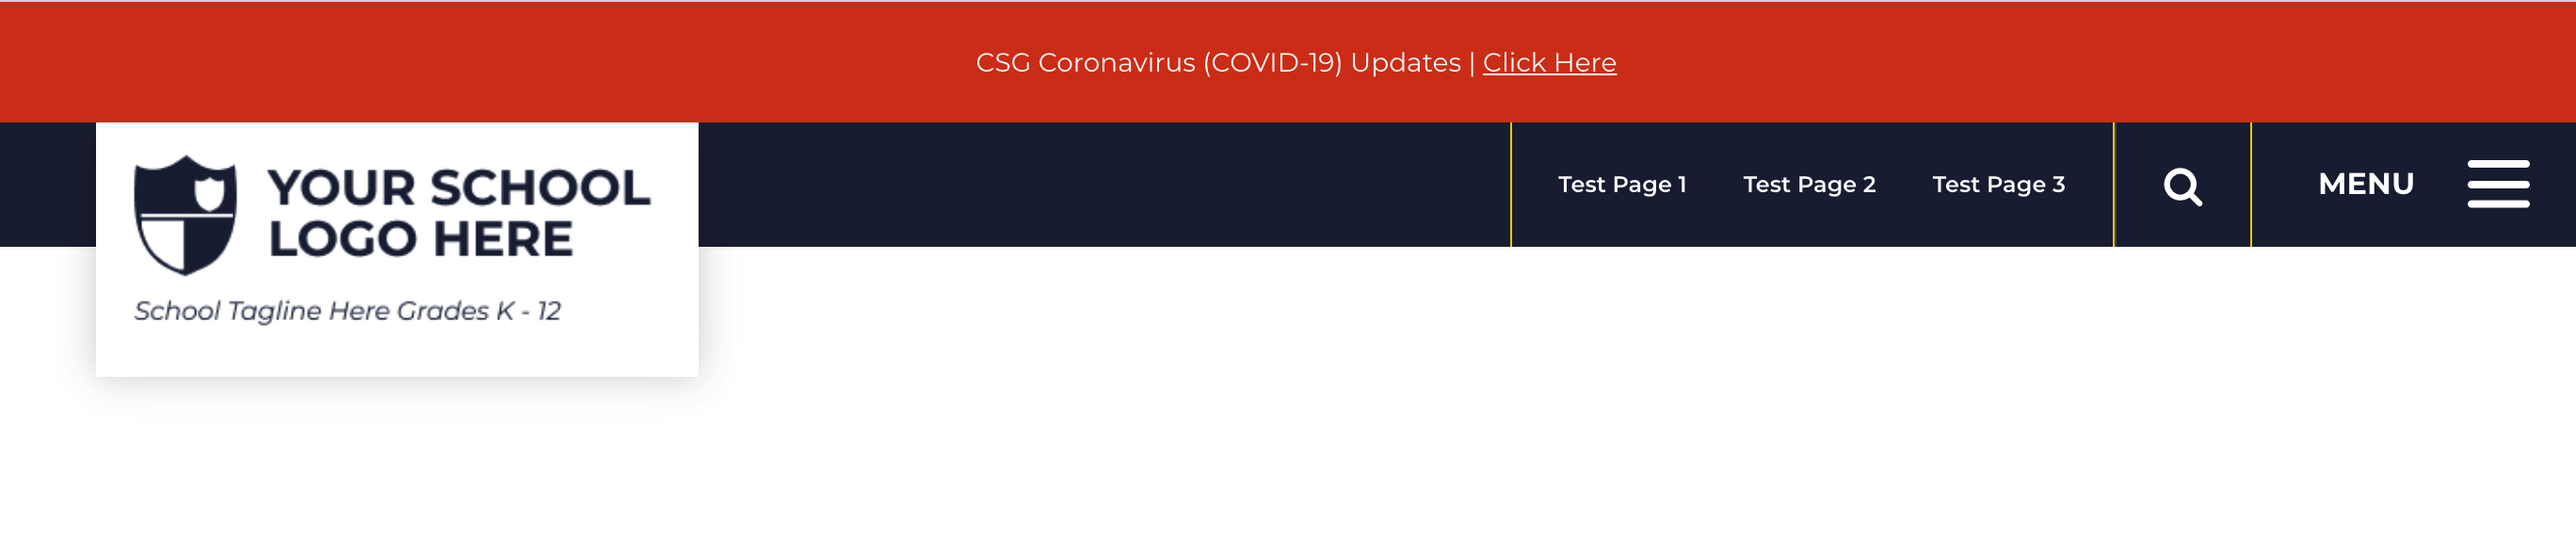 covid-19_banner.png